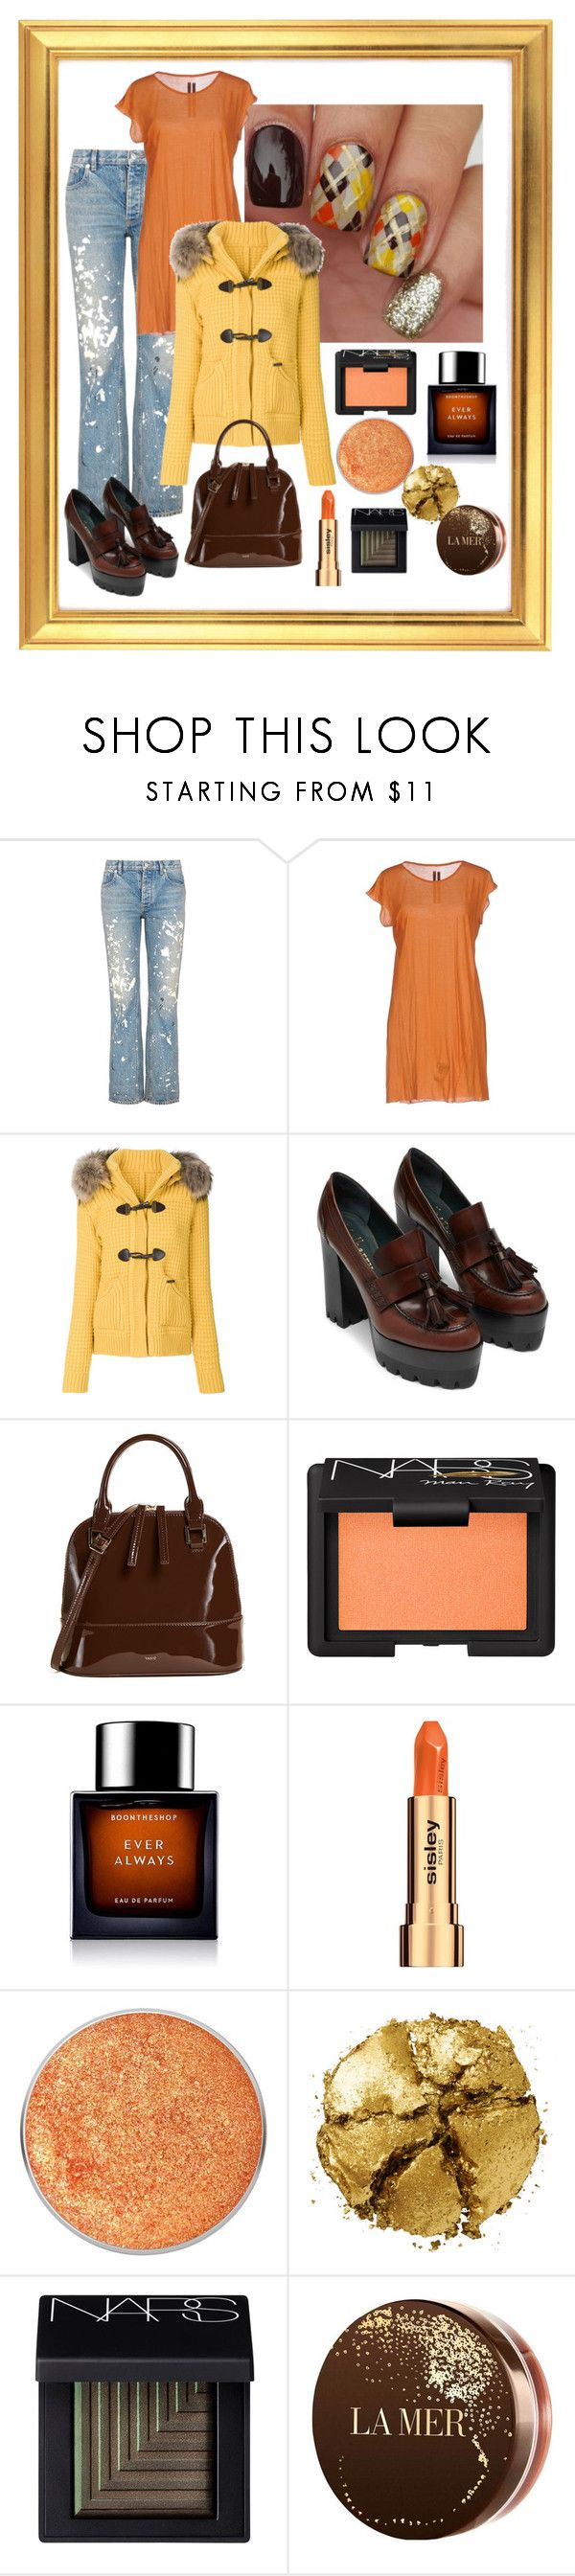 """Nailed It"" by shoultesshark ❤ liked on Polyvore featuring beauty, Helmut Lang, DRKSHDW, Bark, Vasic, NARS Cosmetics, BoonTheShop, Sisley, Suva Beauty and Pat McGrath"